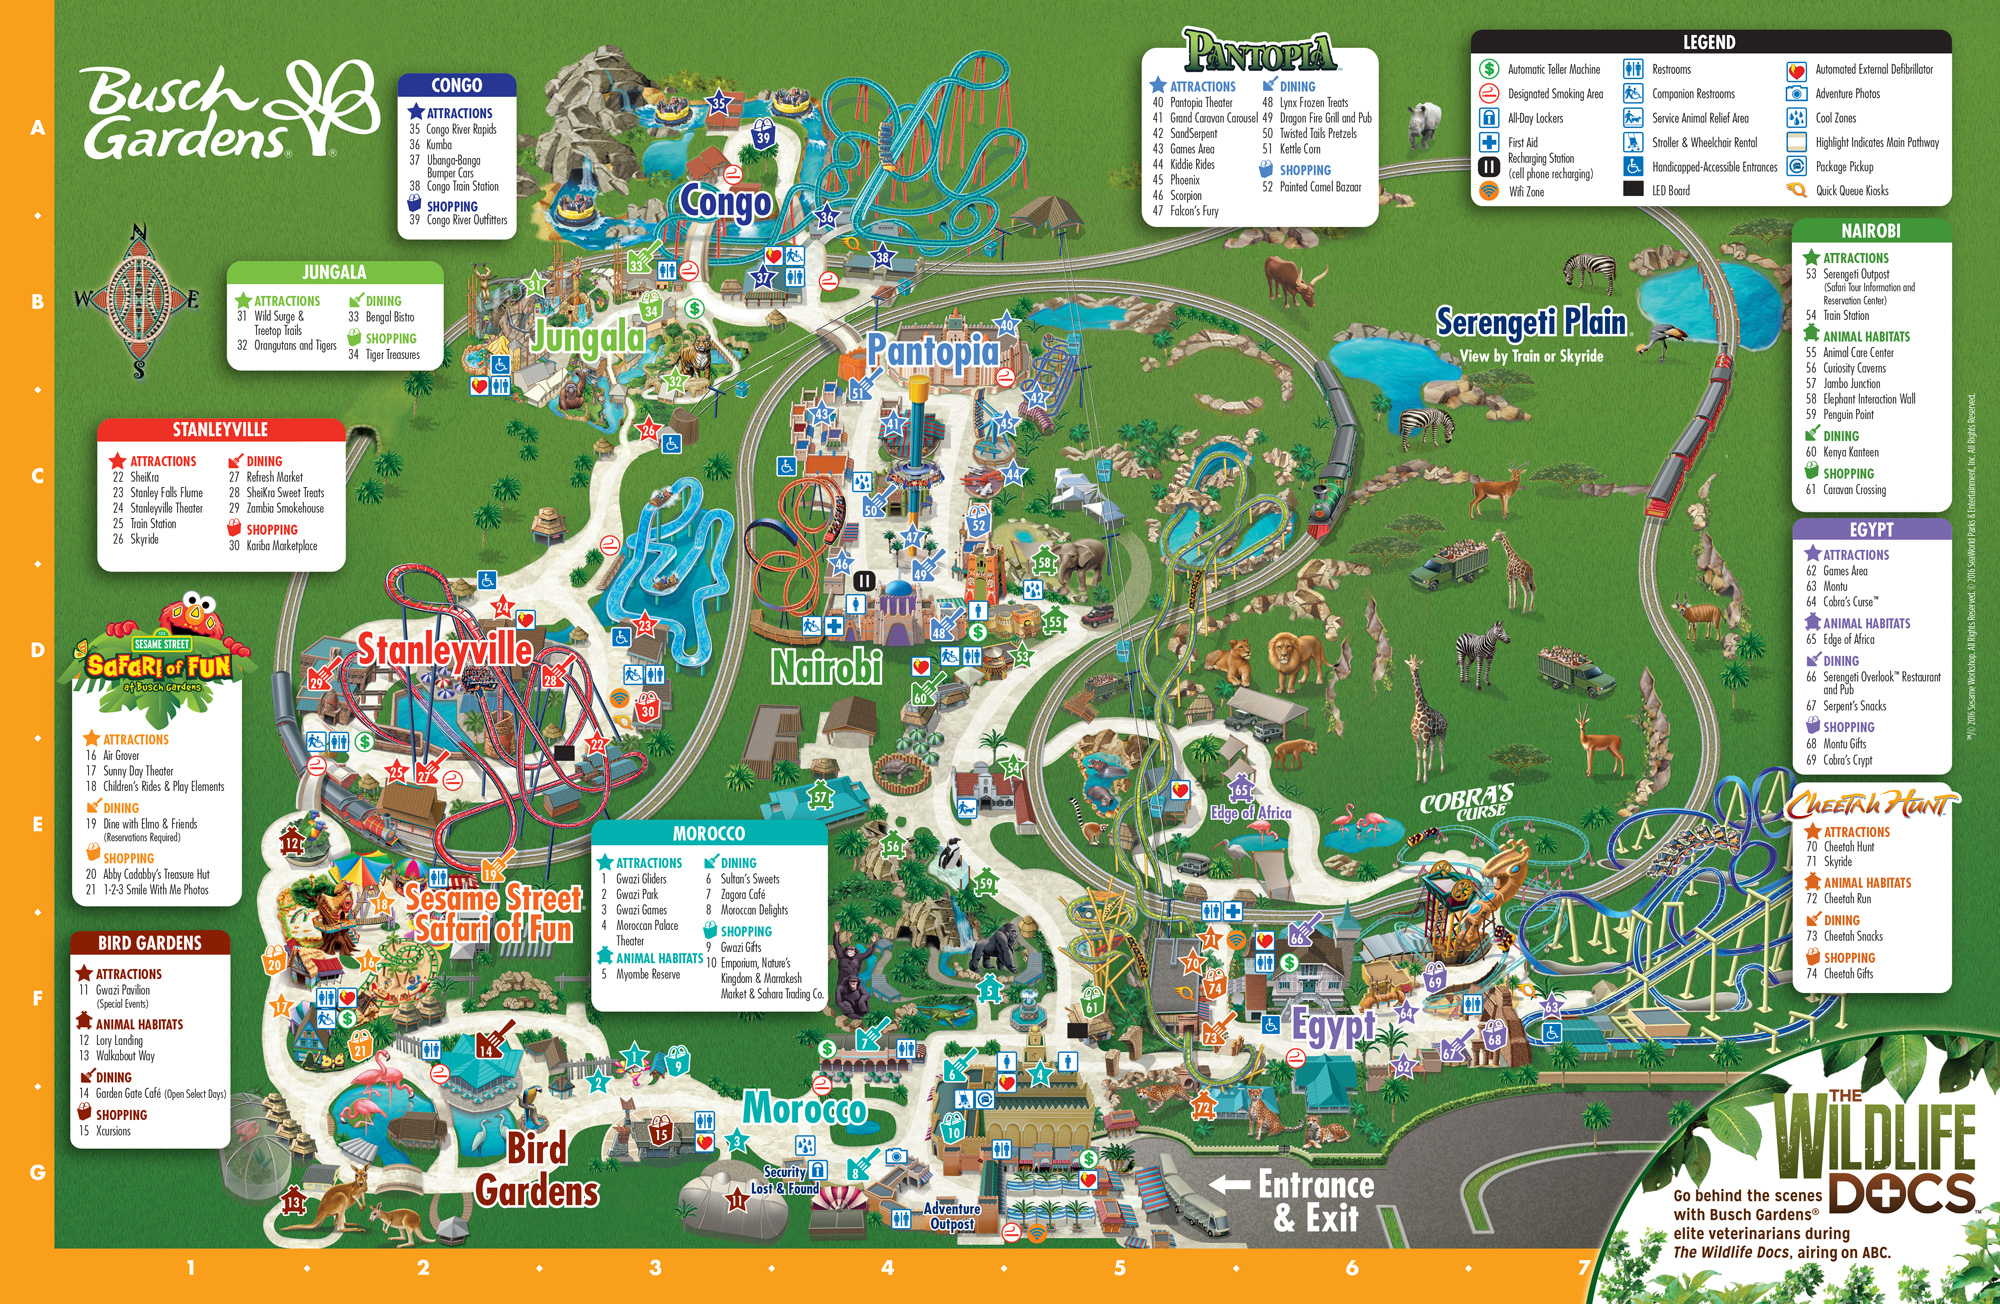 Park Map Busch Gardens Tampa Bay - Usa full map